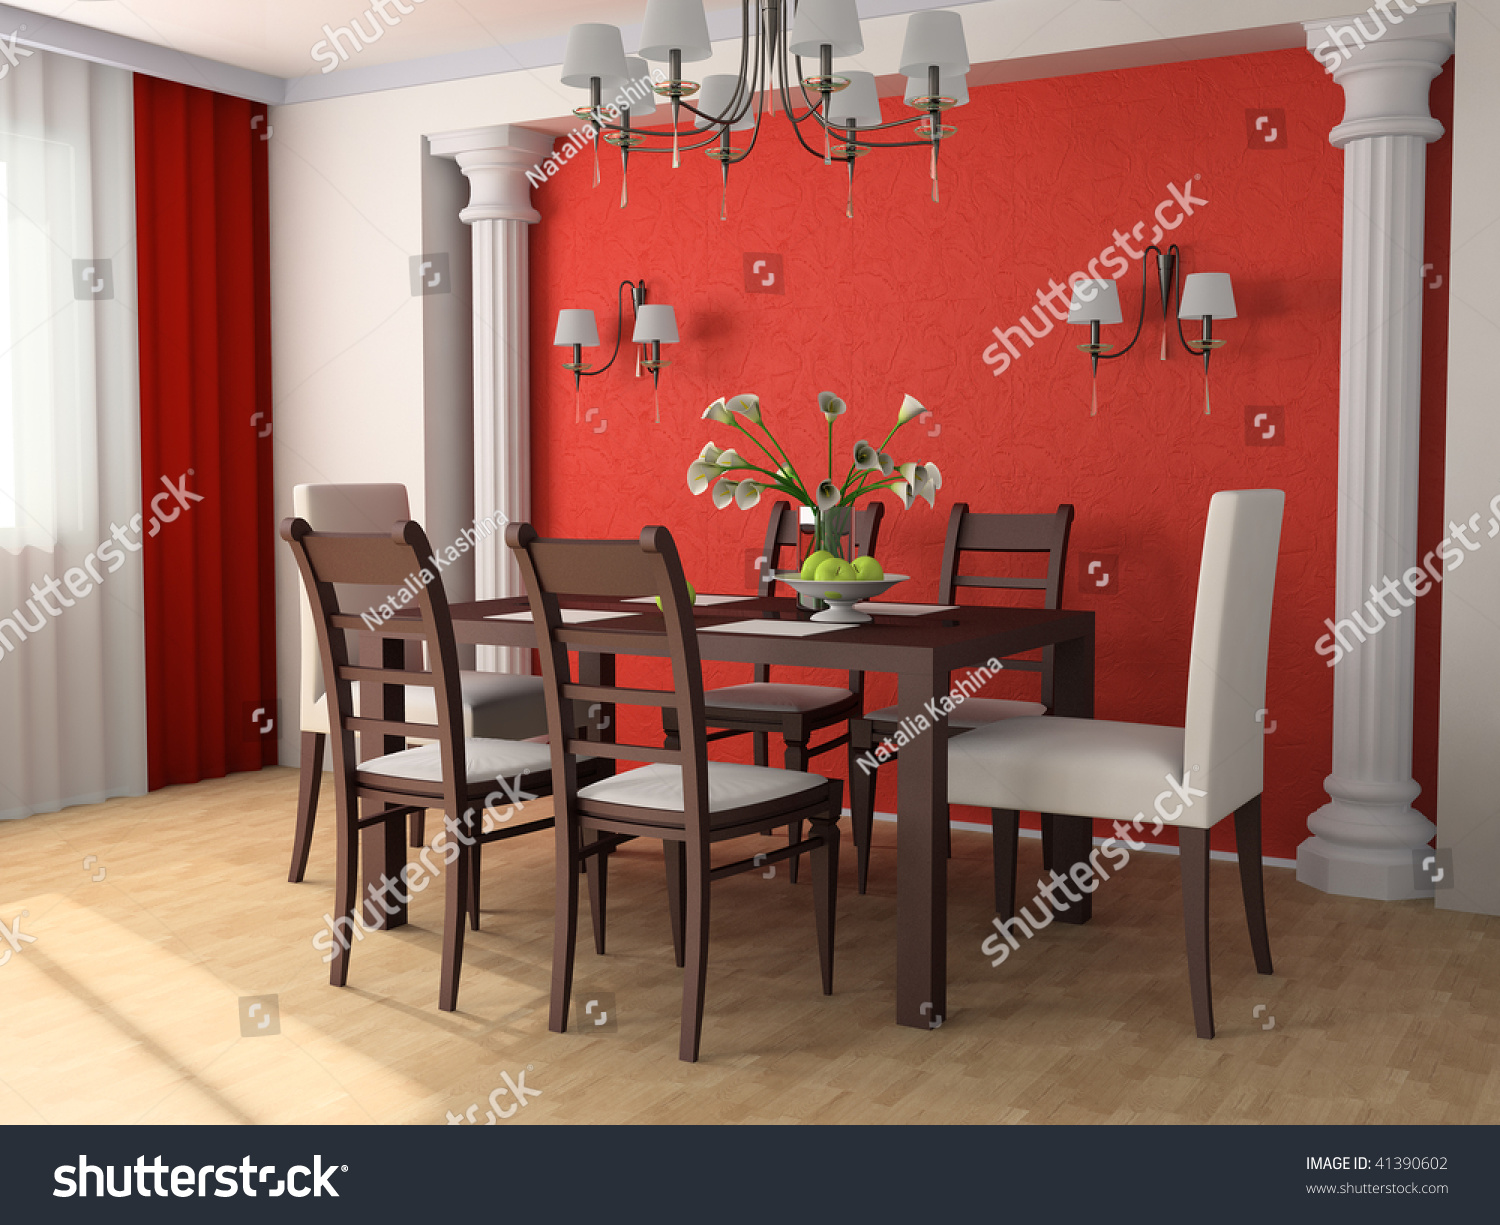 Dining table against a wall 3d image stock photo 41390602 - Dining table against the wall ...